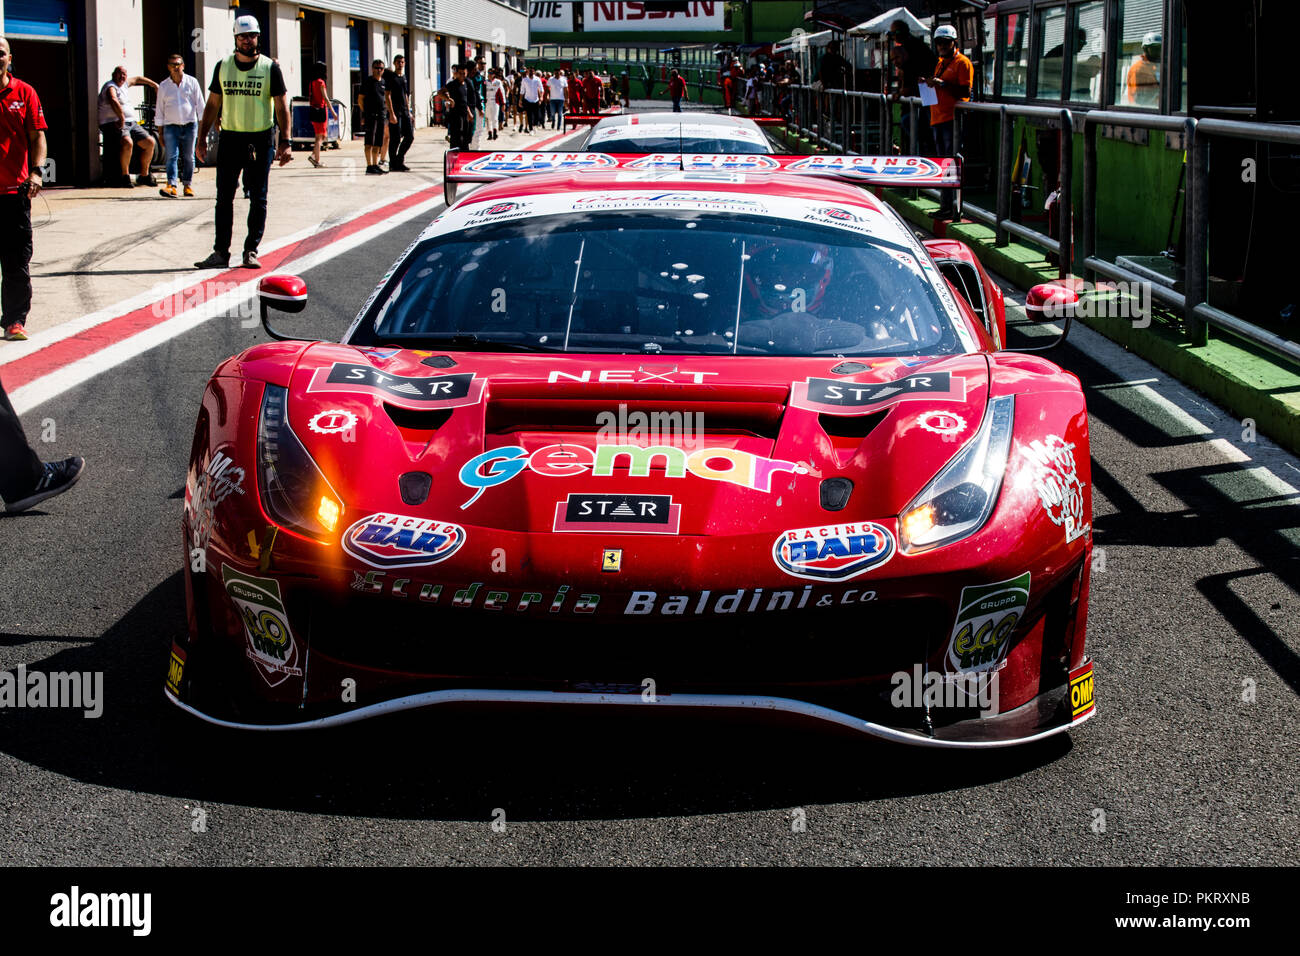 Front view full length of Ferrari touring car in racing circuit pit lane - Stock Image